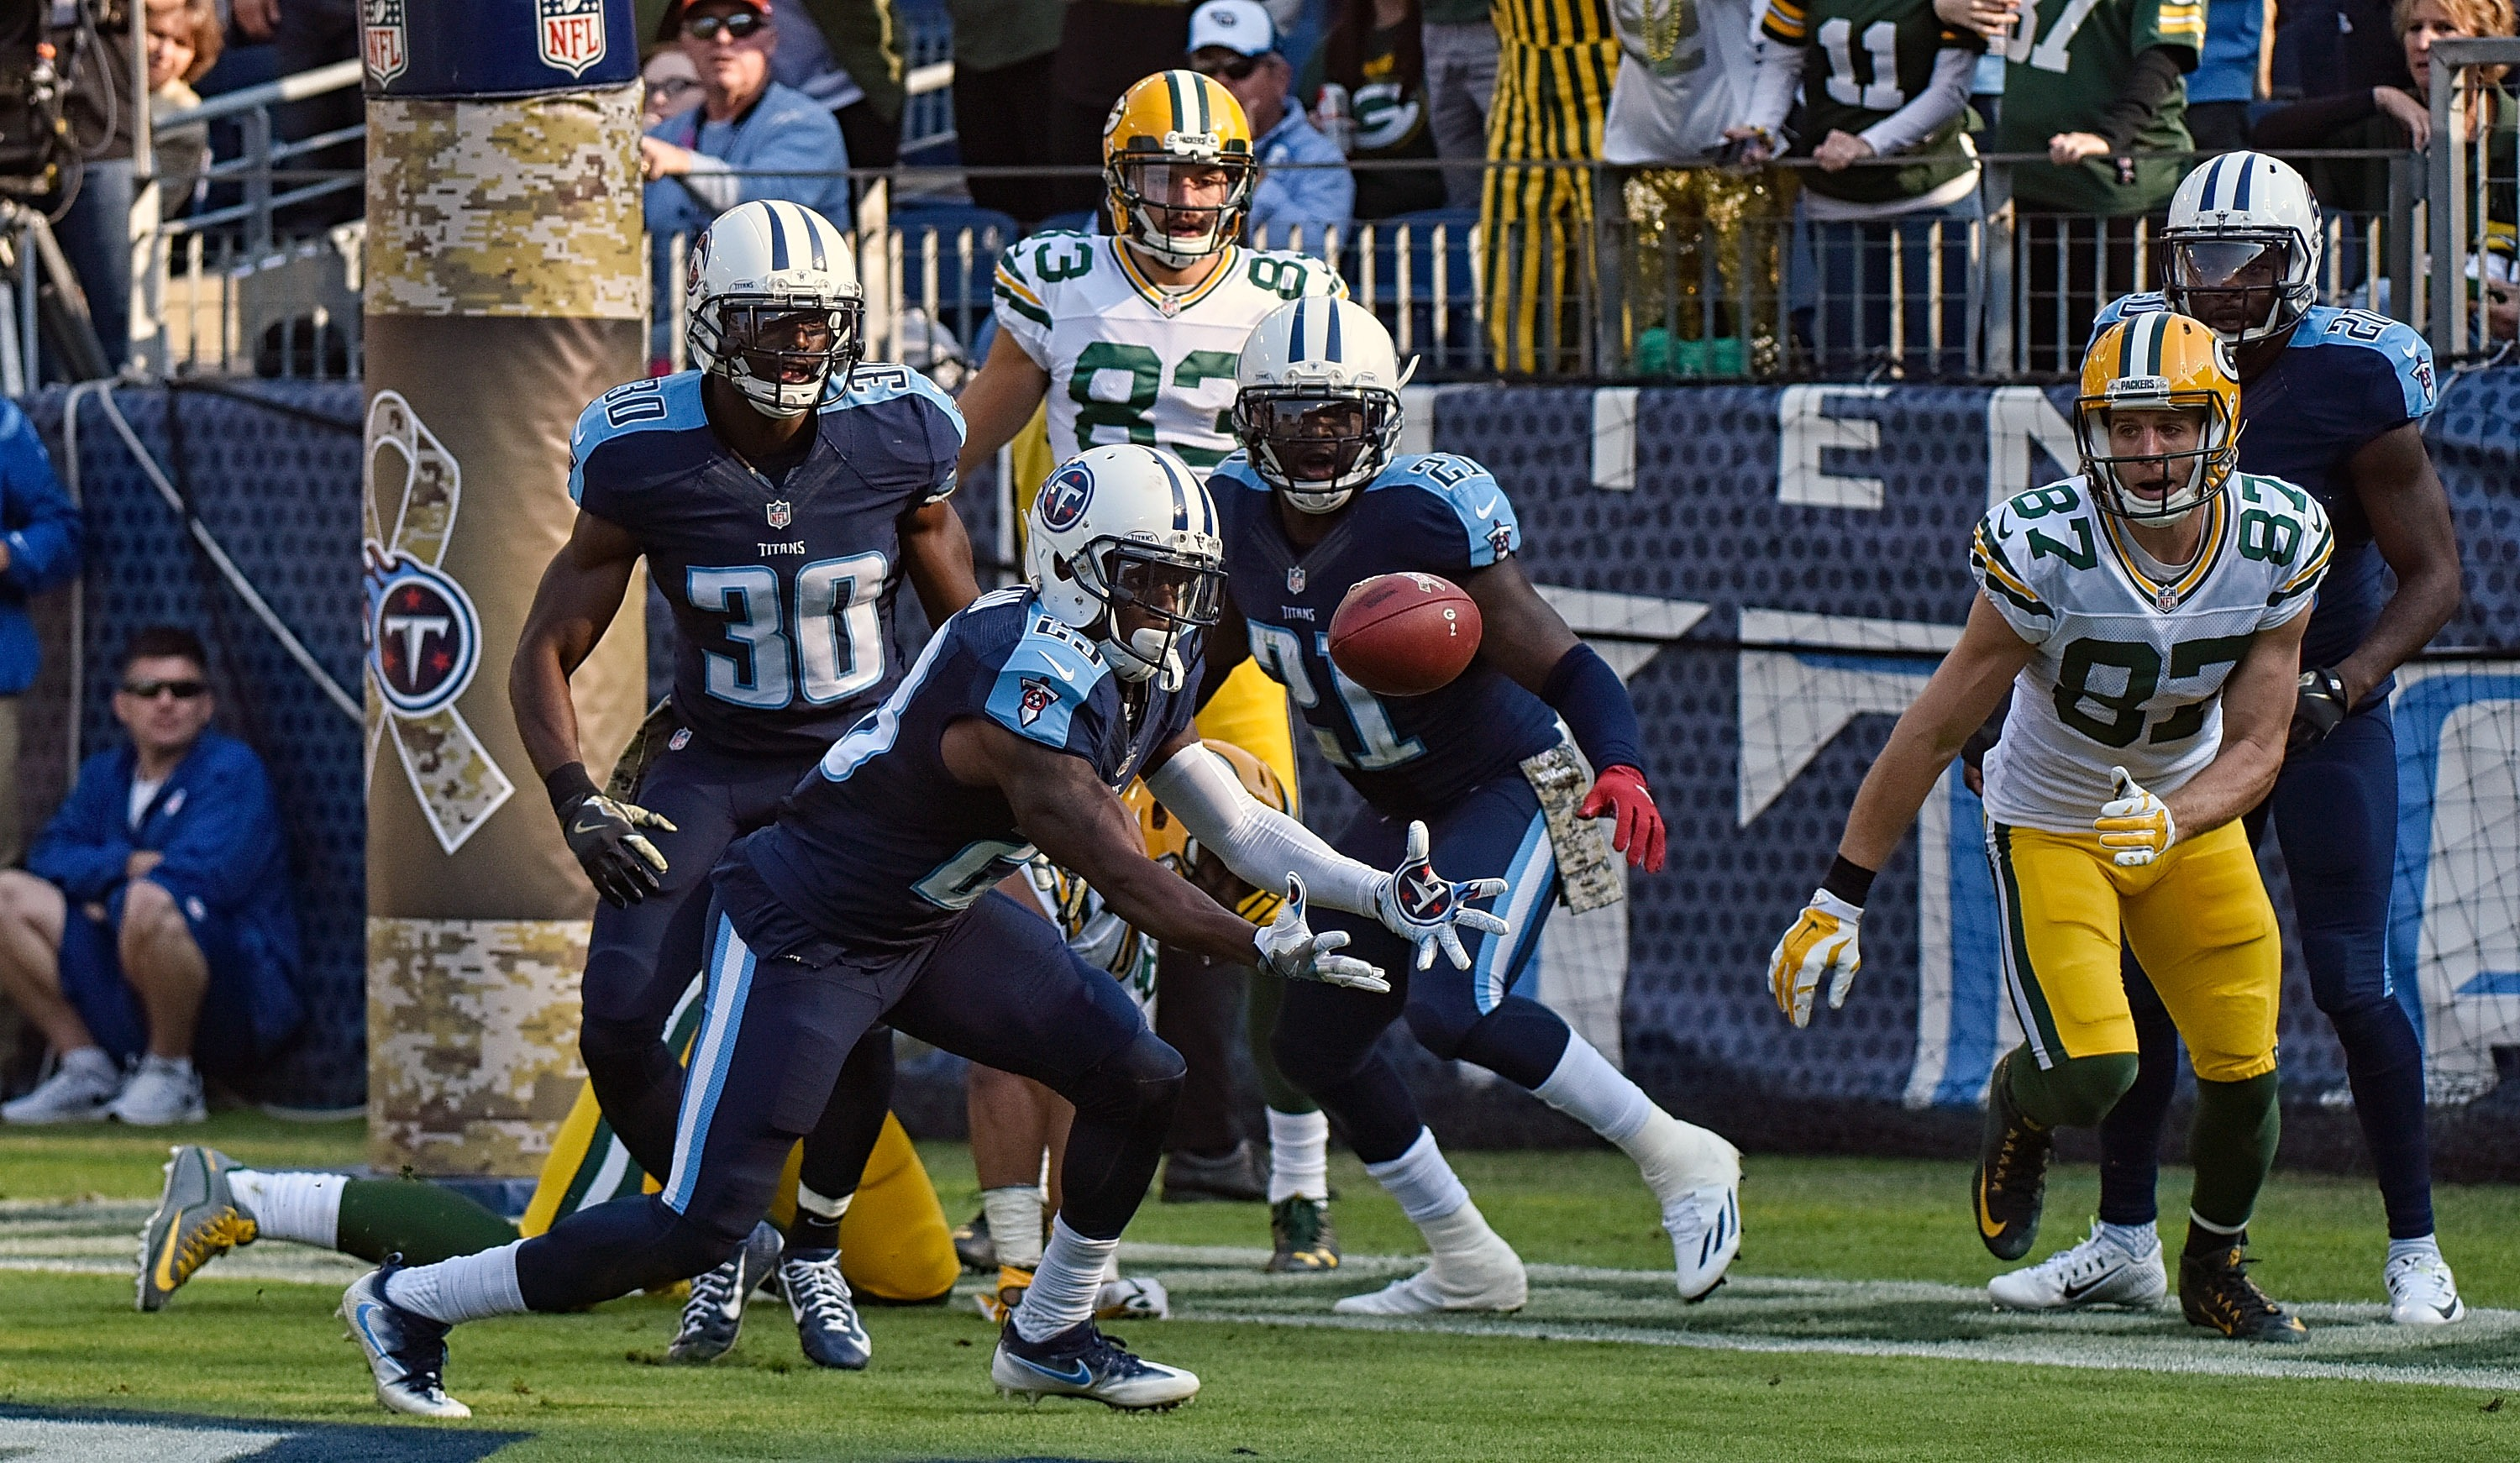 623042976-green-bay-packers-v-tennessee-titans.jpg